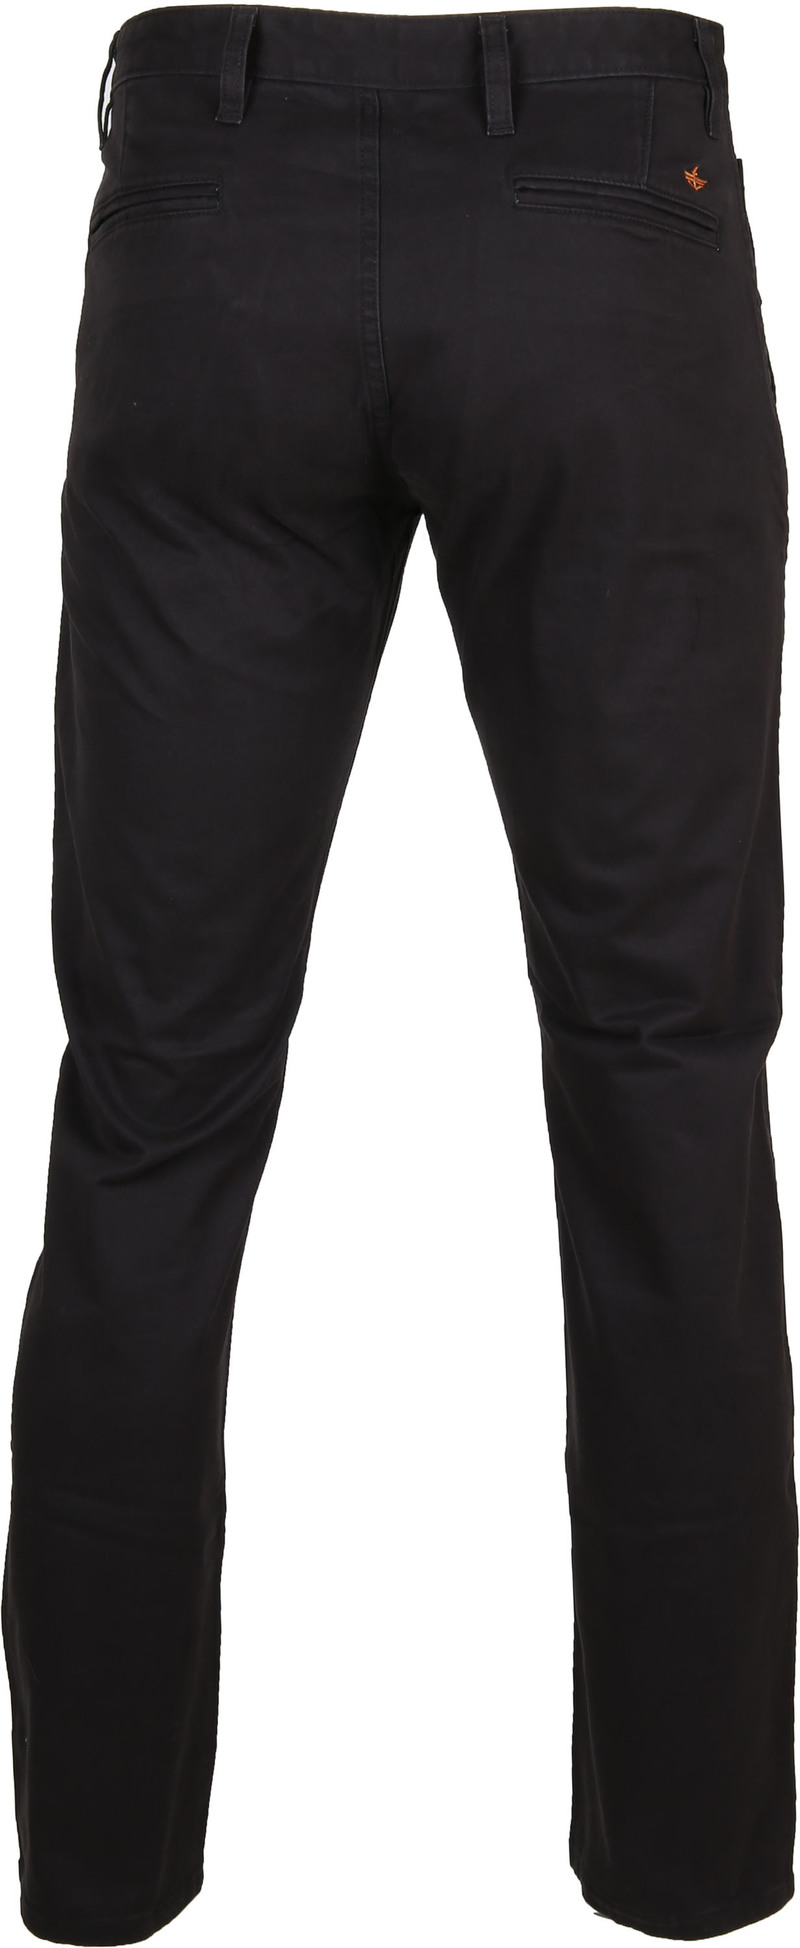 Dockers Trousers Alpha Stretch Black photo 4